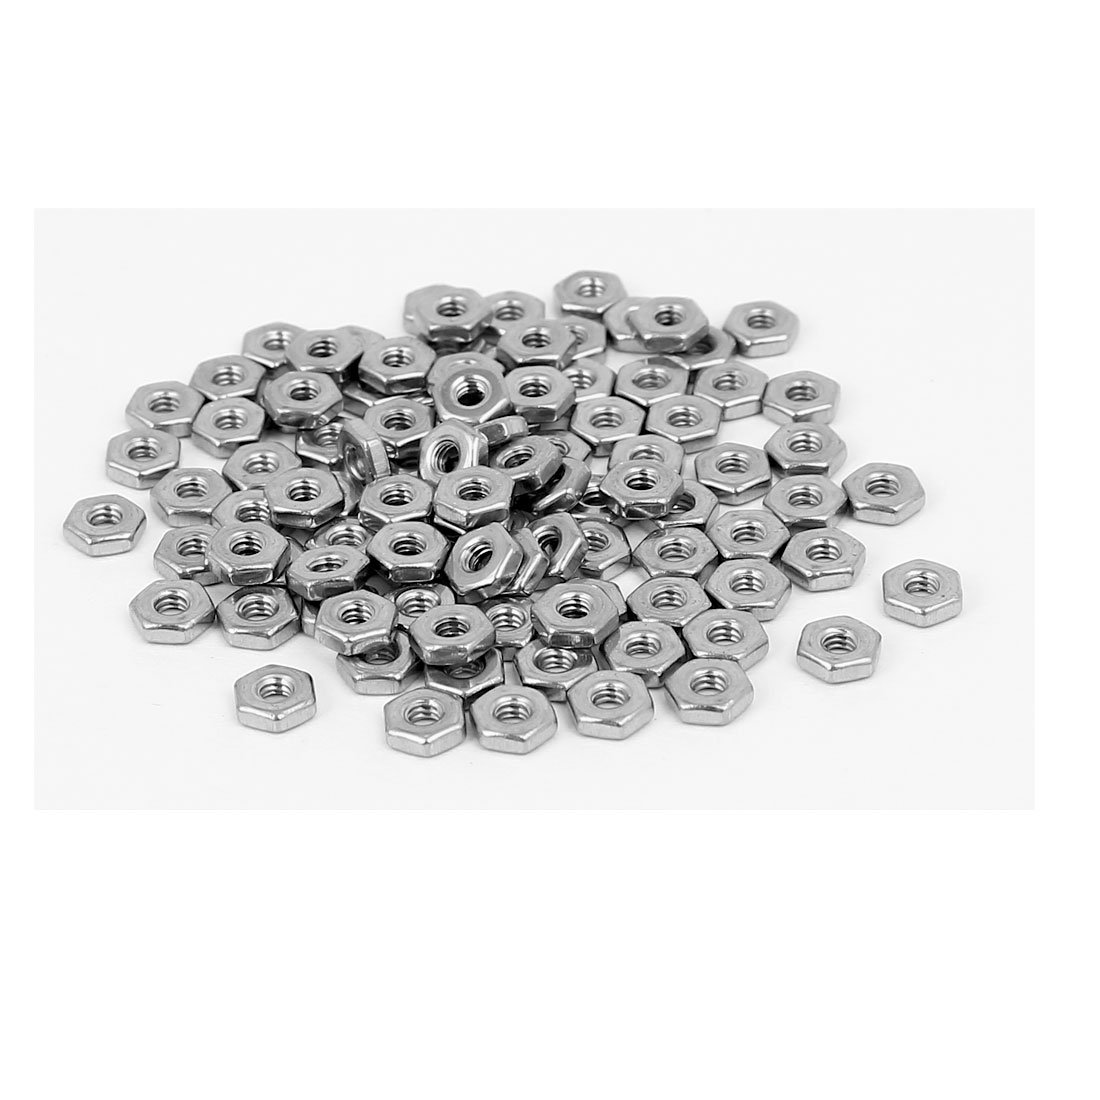 uxcell 7//8 Inch Thread Dia 304 Stainless Steel Finished Metric Hex Nut Silver Tone 4pcs a16081700ux0507